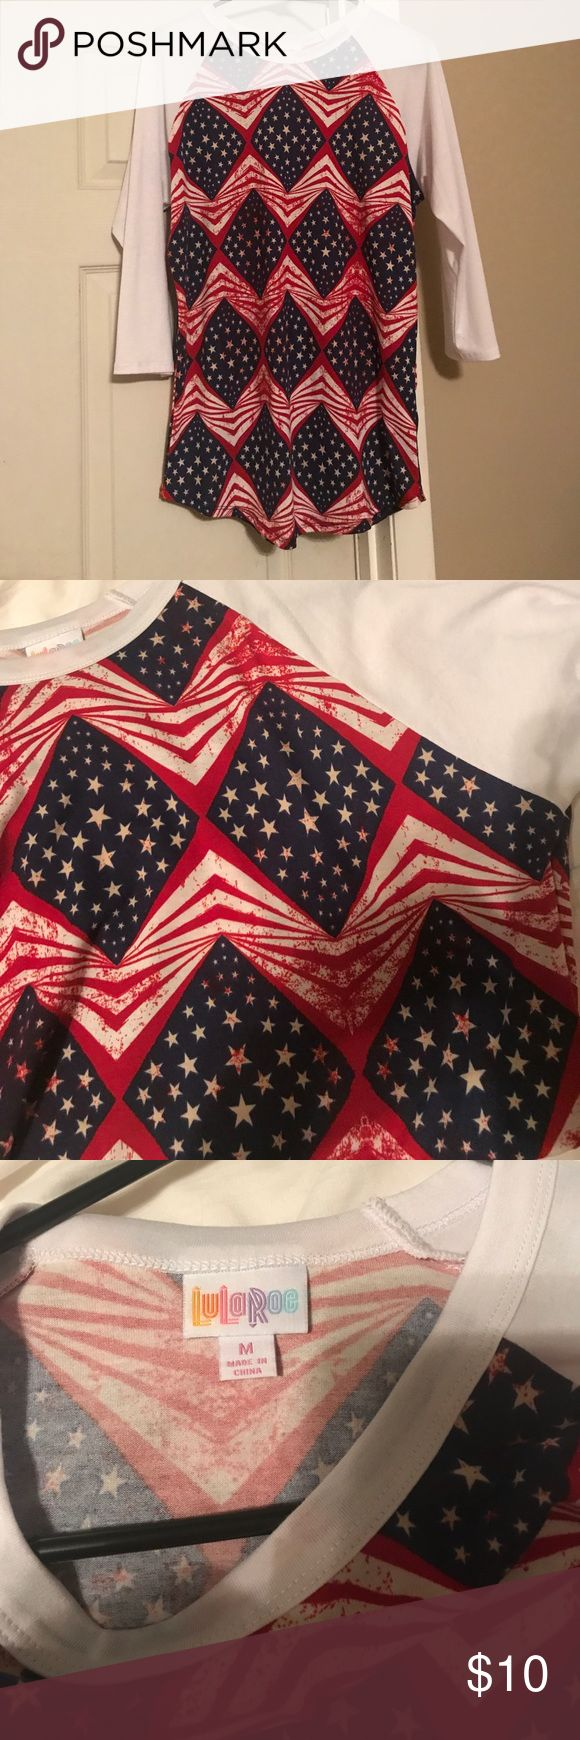 Americana LuLaRoe Randy Shirt Americana LuLaRoe Randy top. Size Medium. These run a little big. Hardly been worn. LuLaRoe Tops